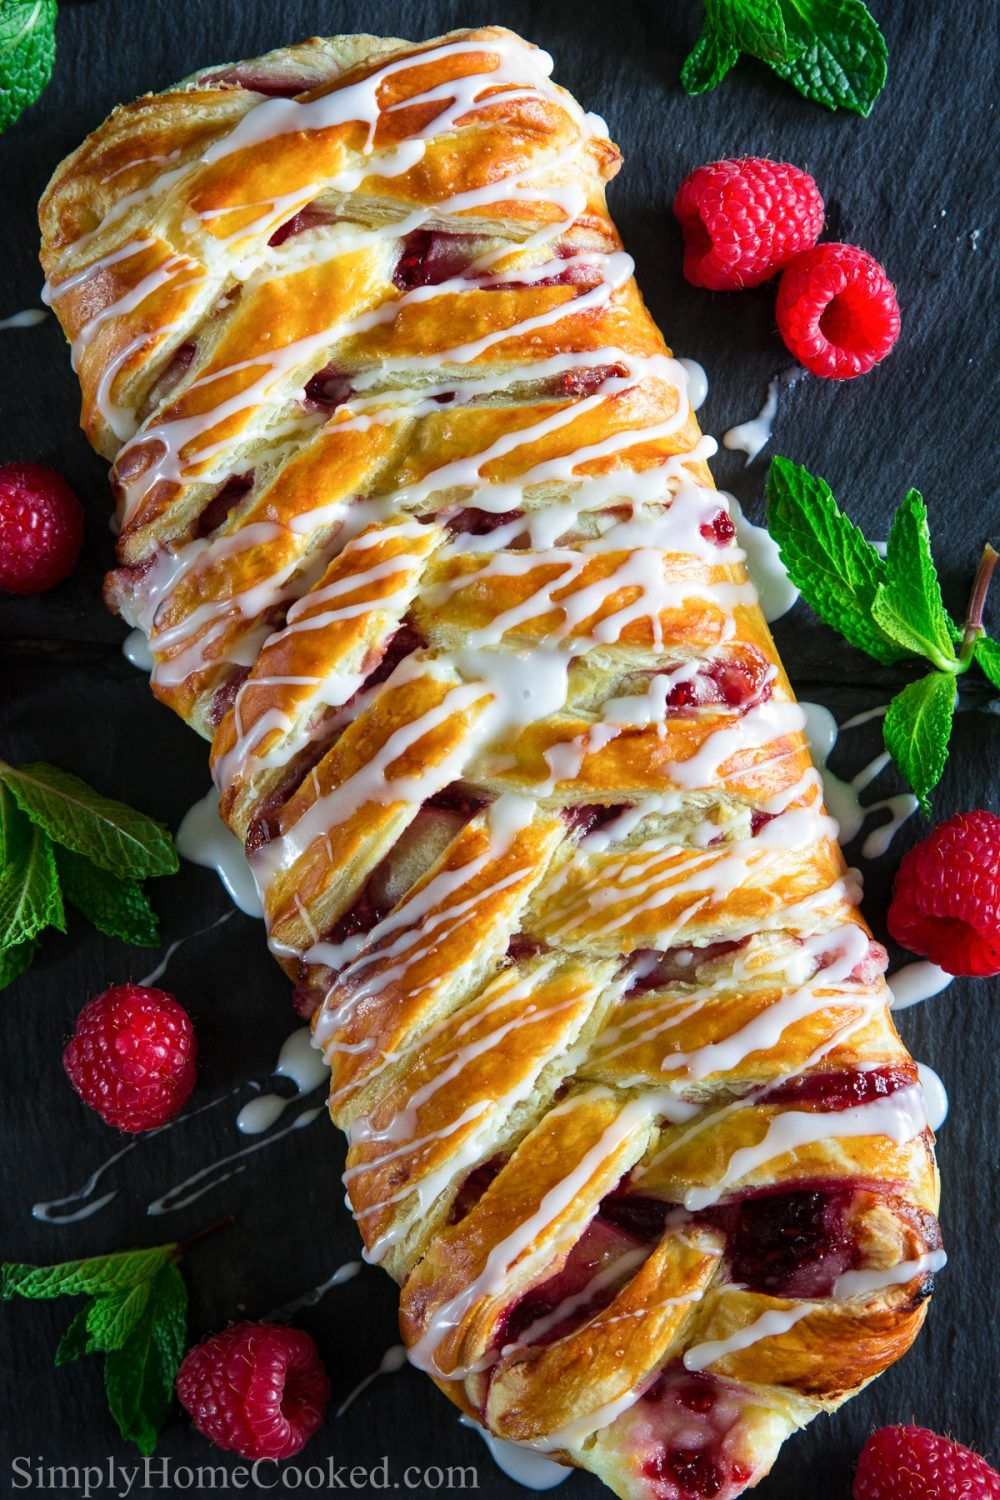 Easy Raspberry Cheese Danish Recipe - Simply Home Cooked